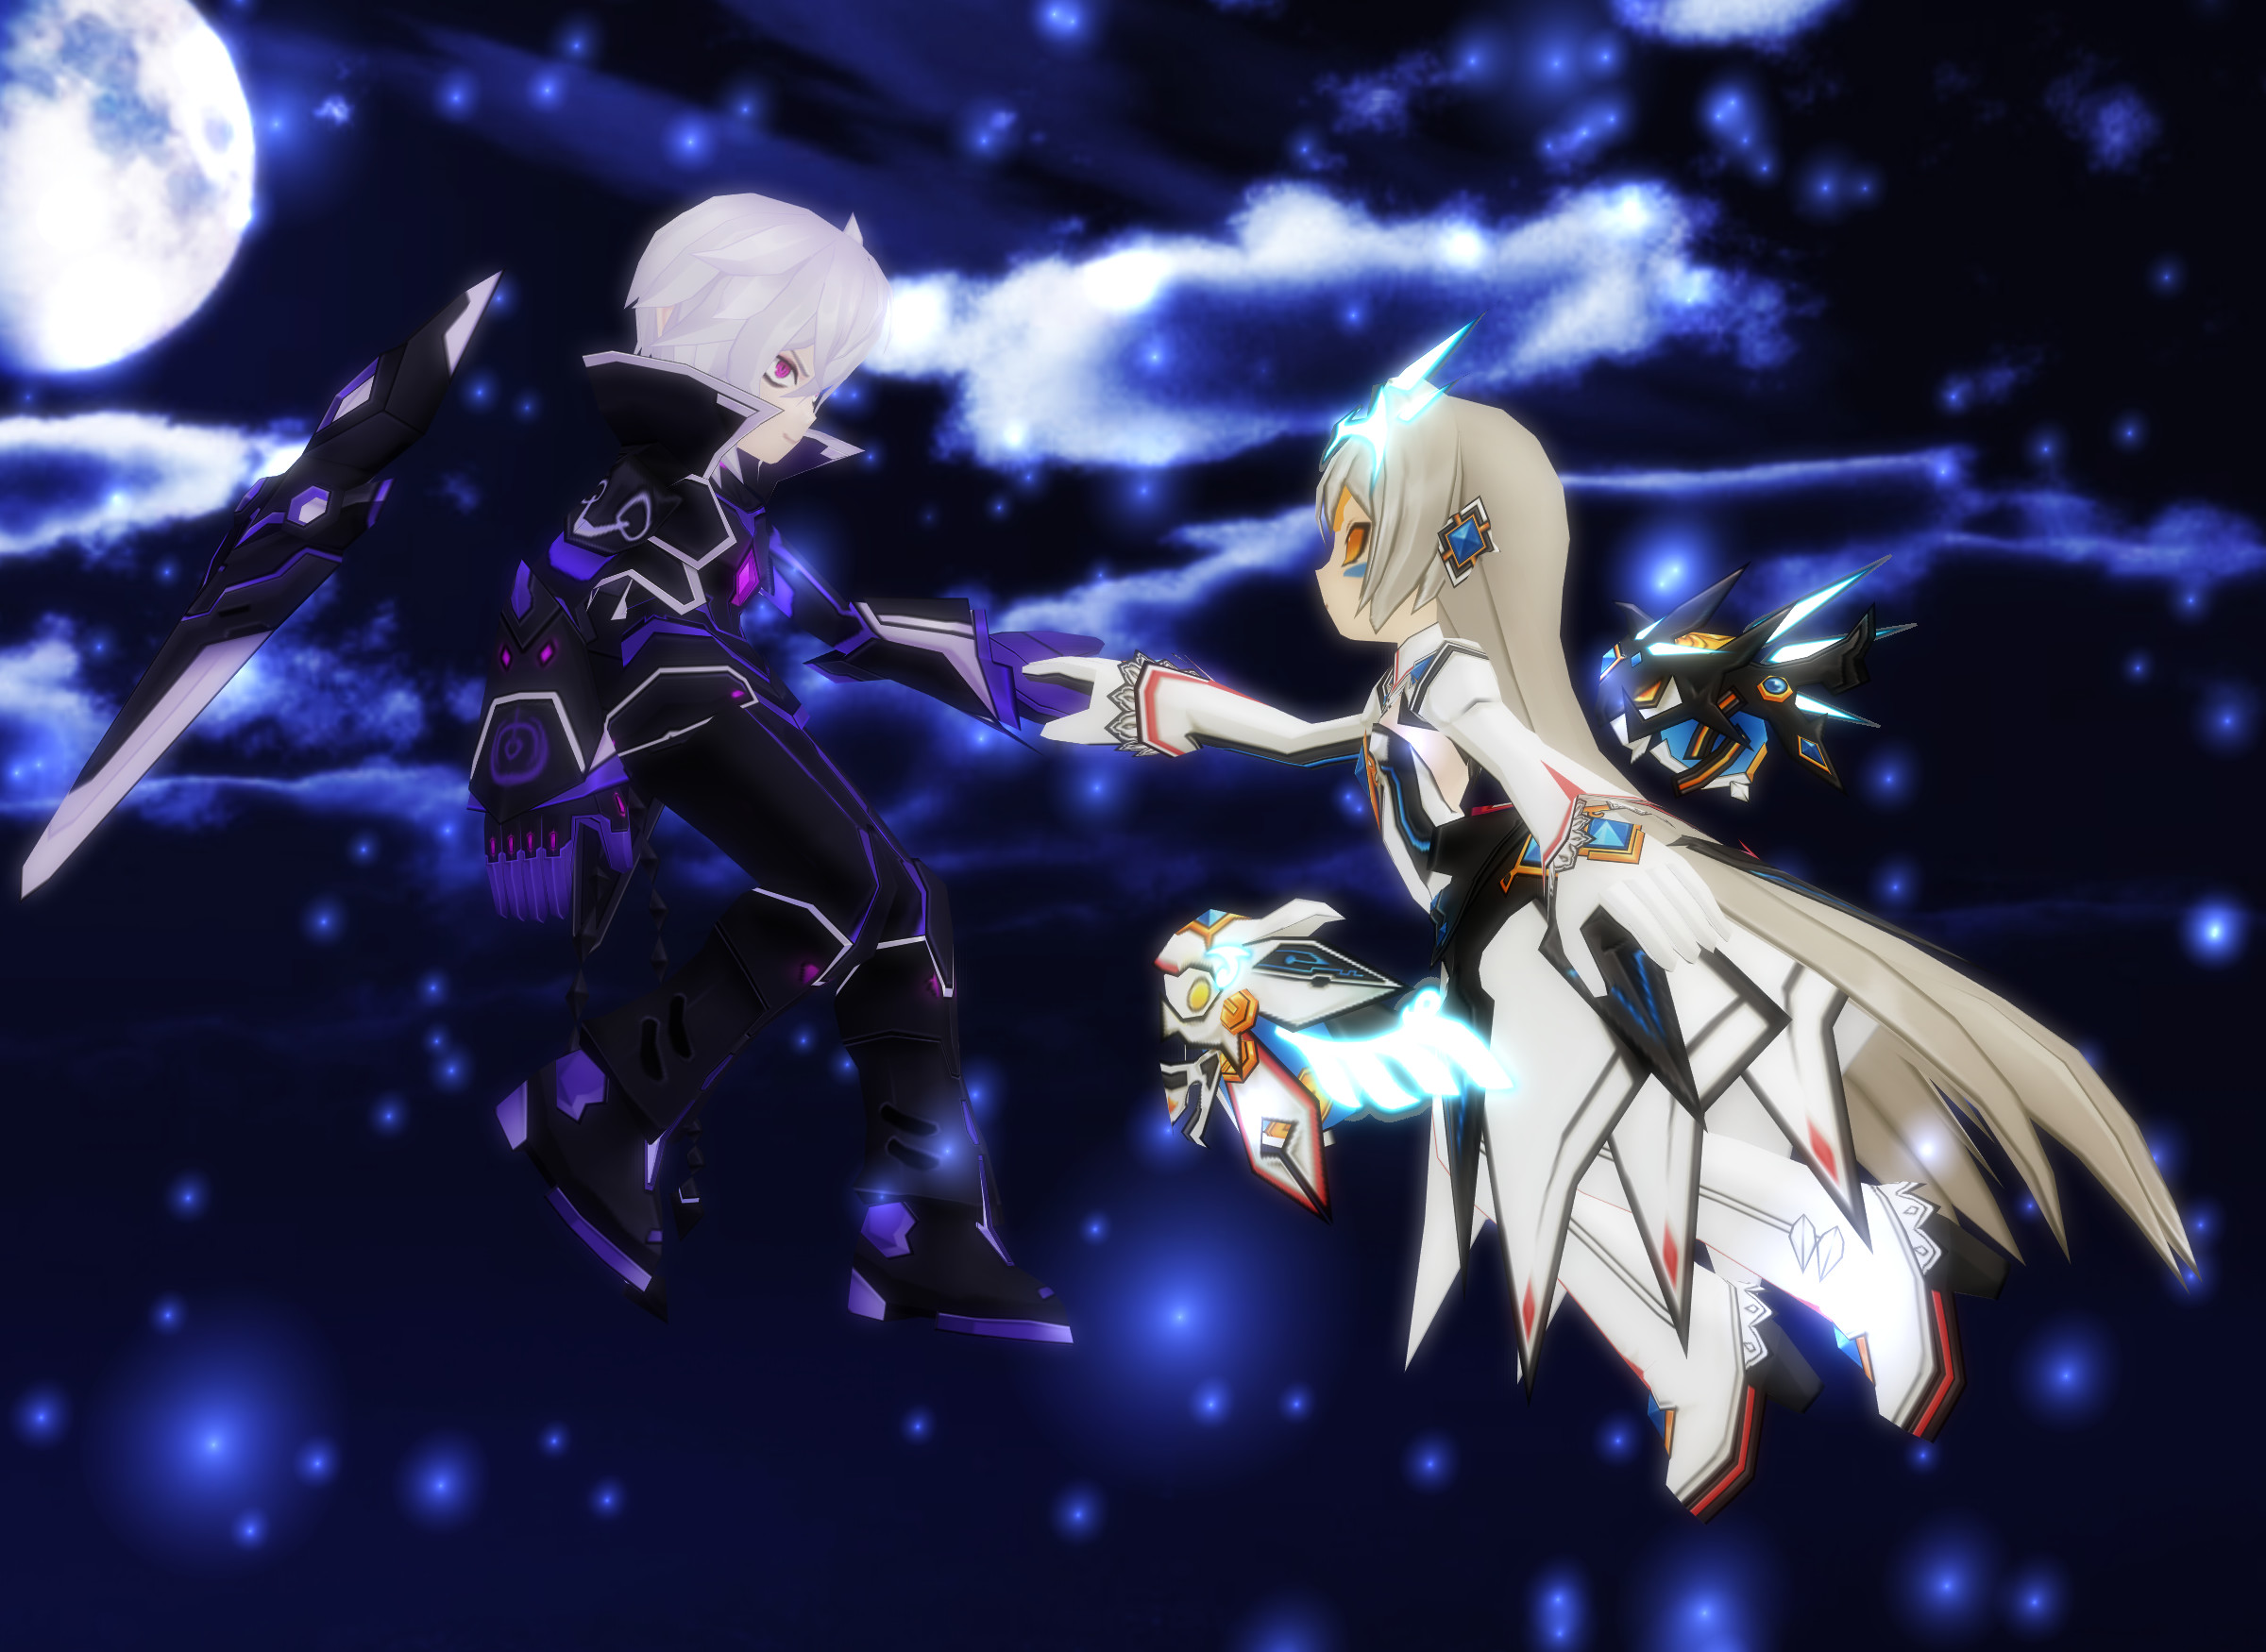 2400x1750 ... Elsword] A Sky for Two (Add x Eve) by Sallaria